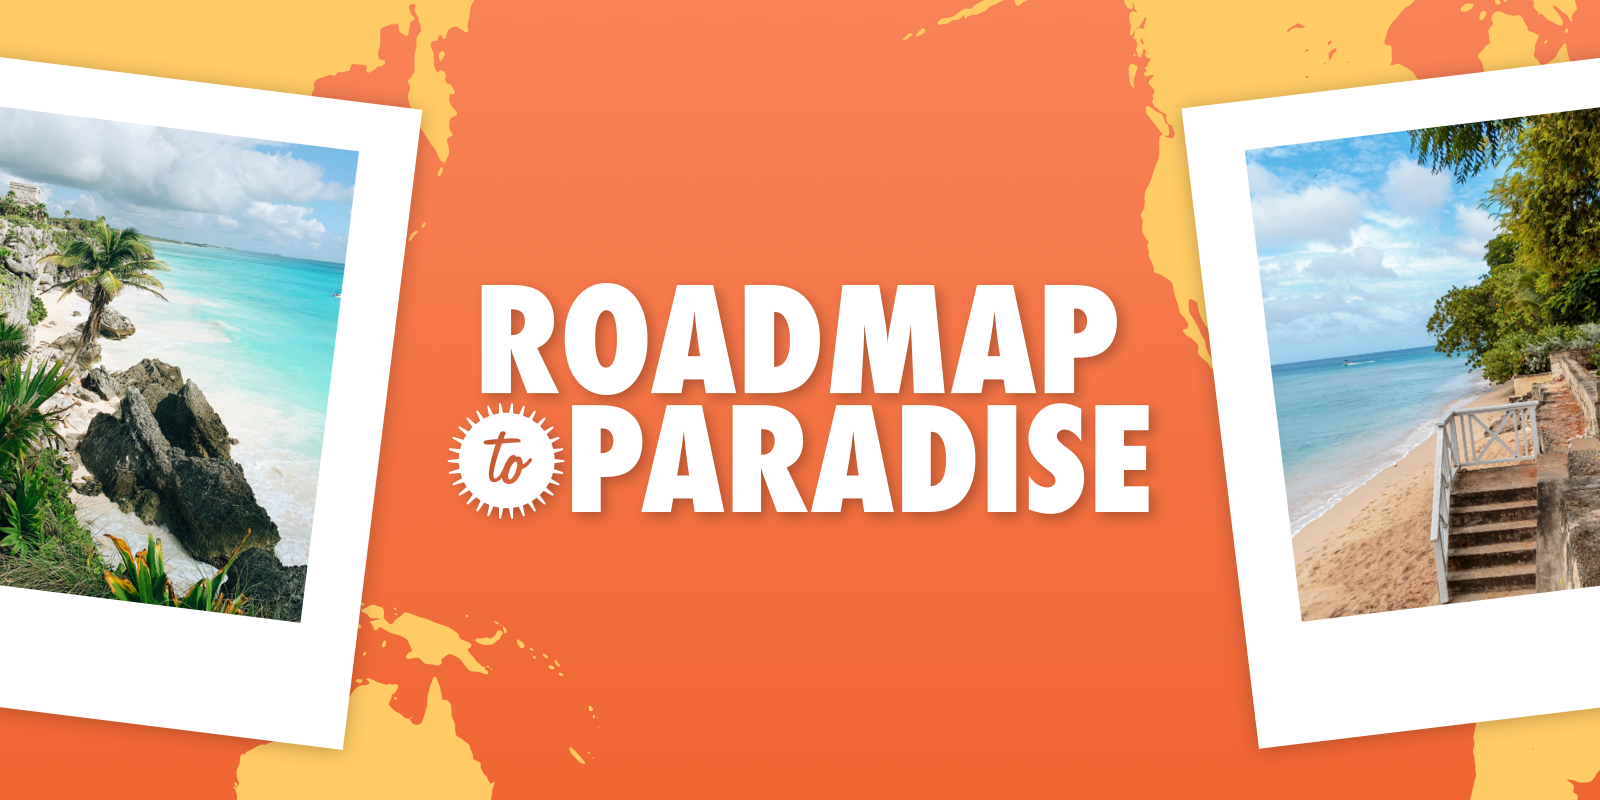 Travel blog: Take This Quiz And We'll Reveal Whether Your Roadmap Leads To Barbados or Mexico